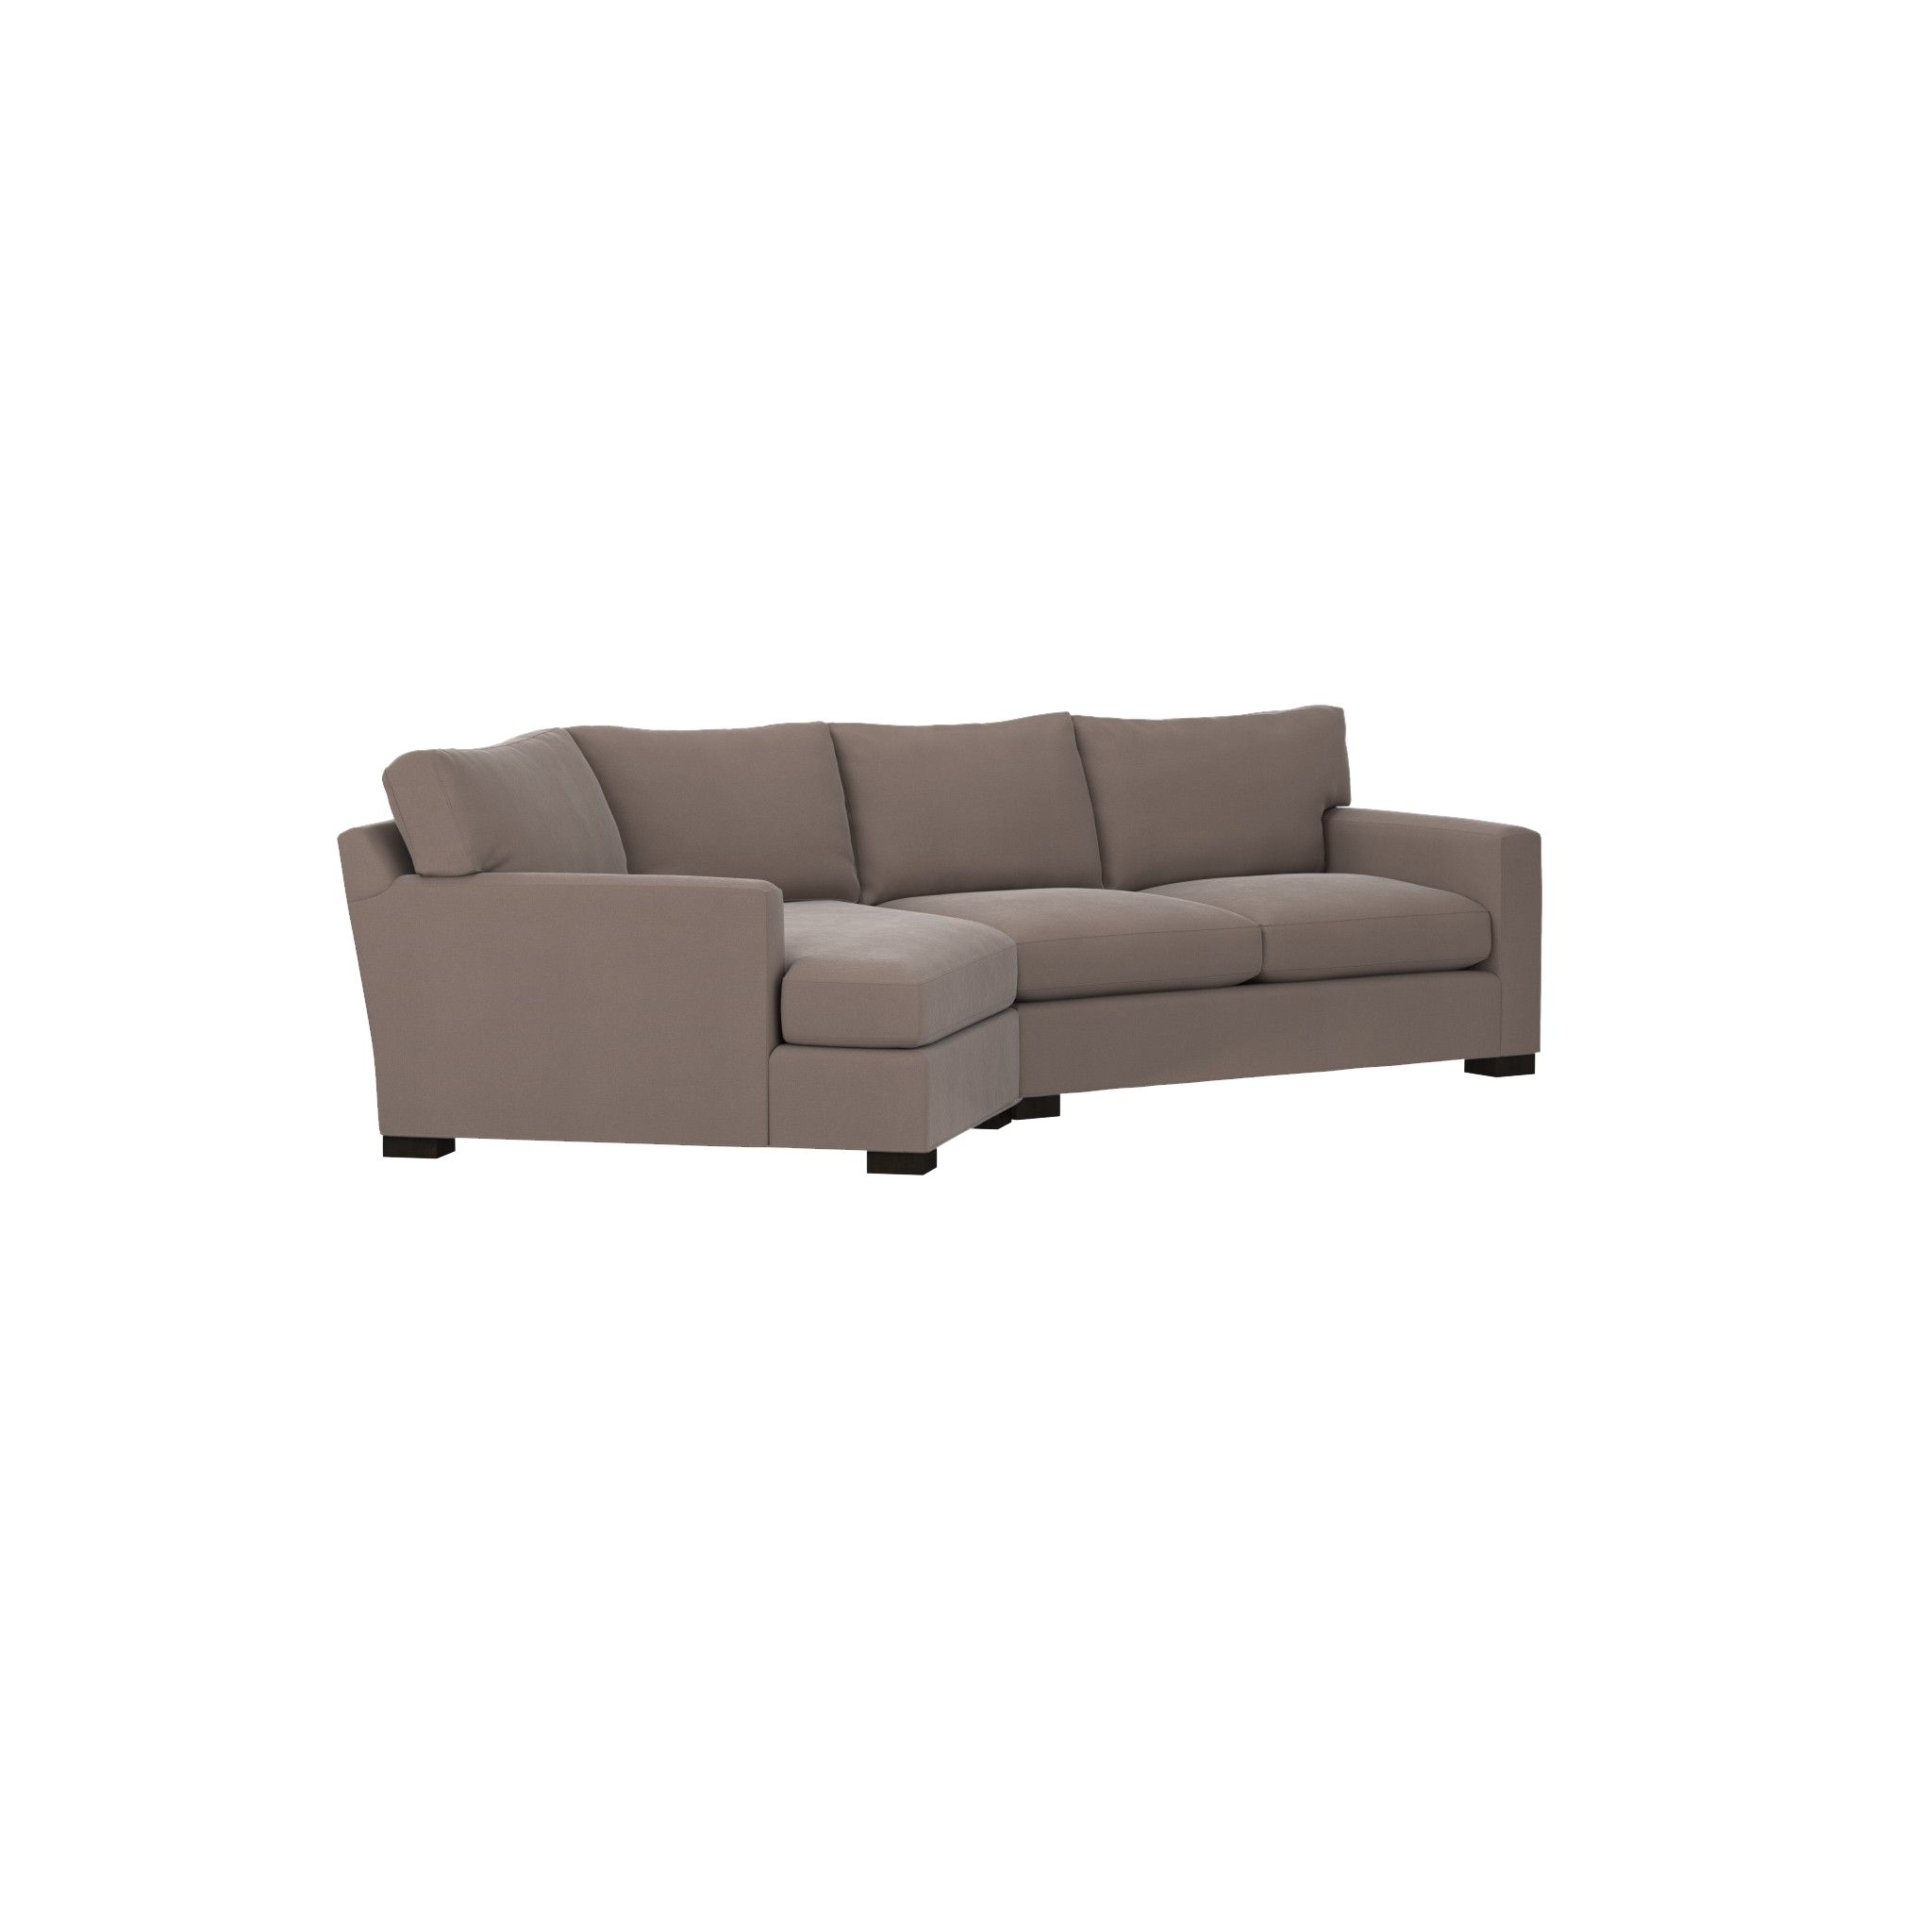 Widely Used Axis Ii 2 Piece Right Arm Angled Chaise Sectional Sofa Crate And In Angled Chaise Sofas (View 13 of 15)